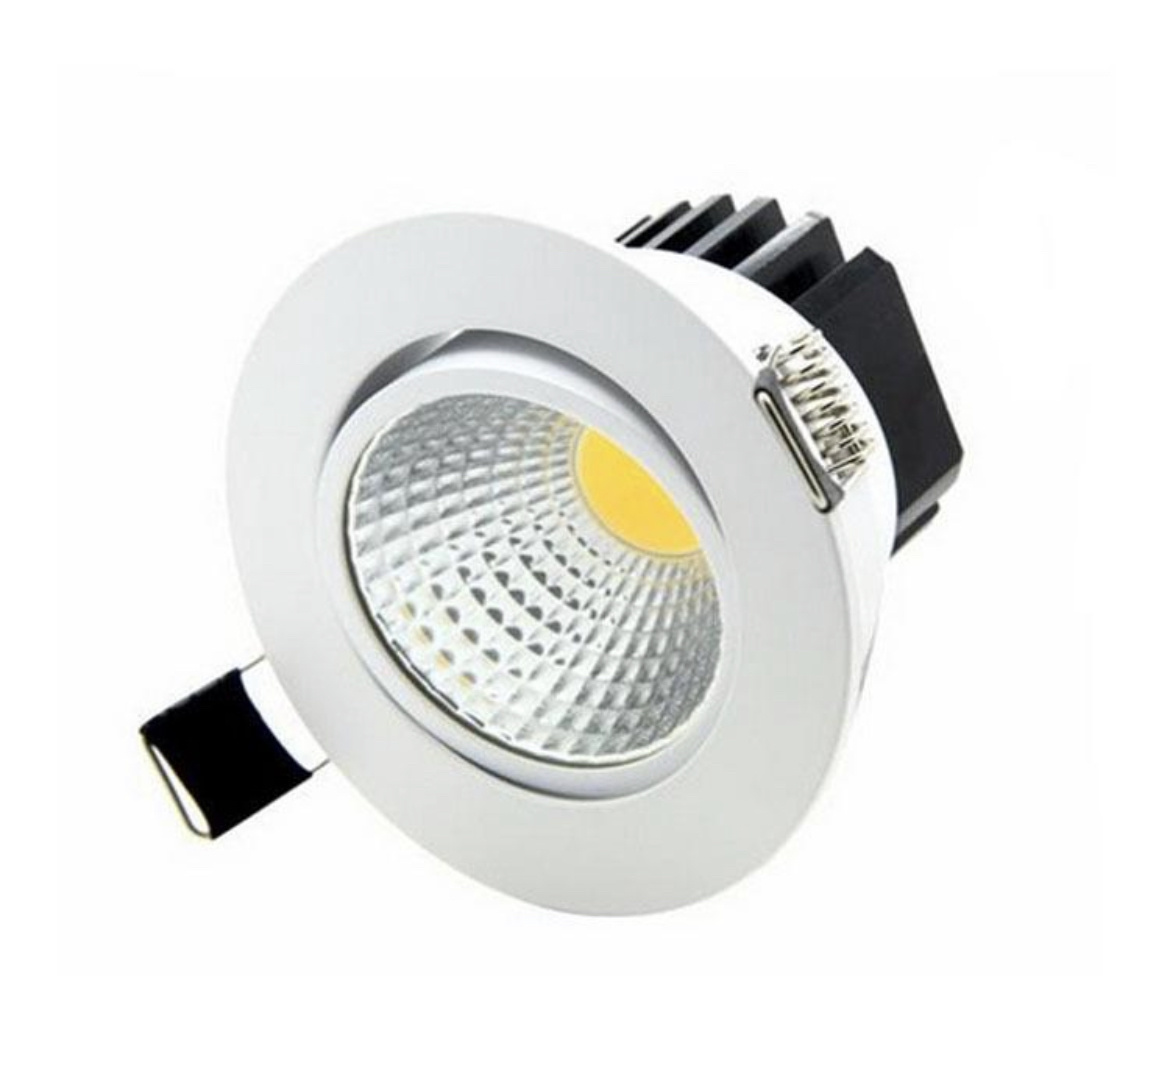 Led inbouwspots wit